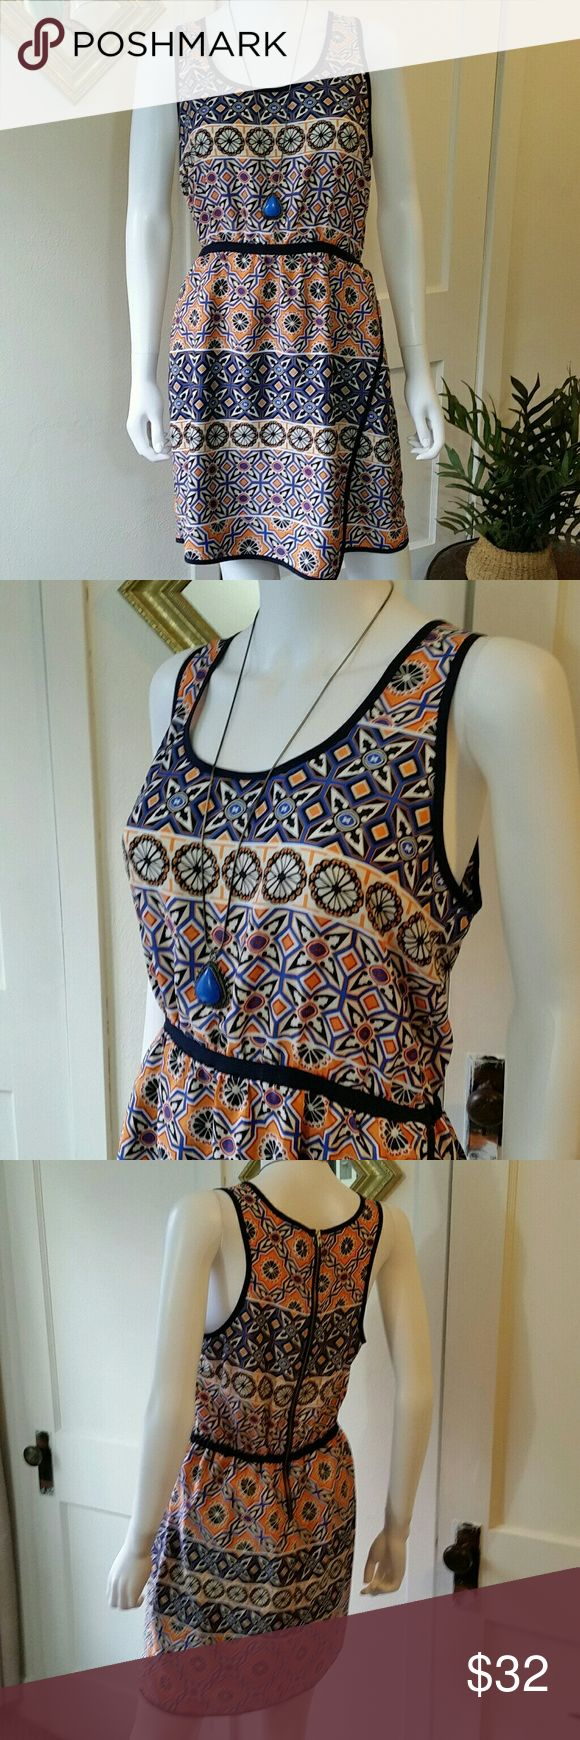 Bar III Tribal Print Shift Dress Excellent condition gorgeous tribal print in blues and oranges with exposed zipper and faux wrap skirt. Pretty and perfect for summer. Bar III Dresses